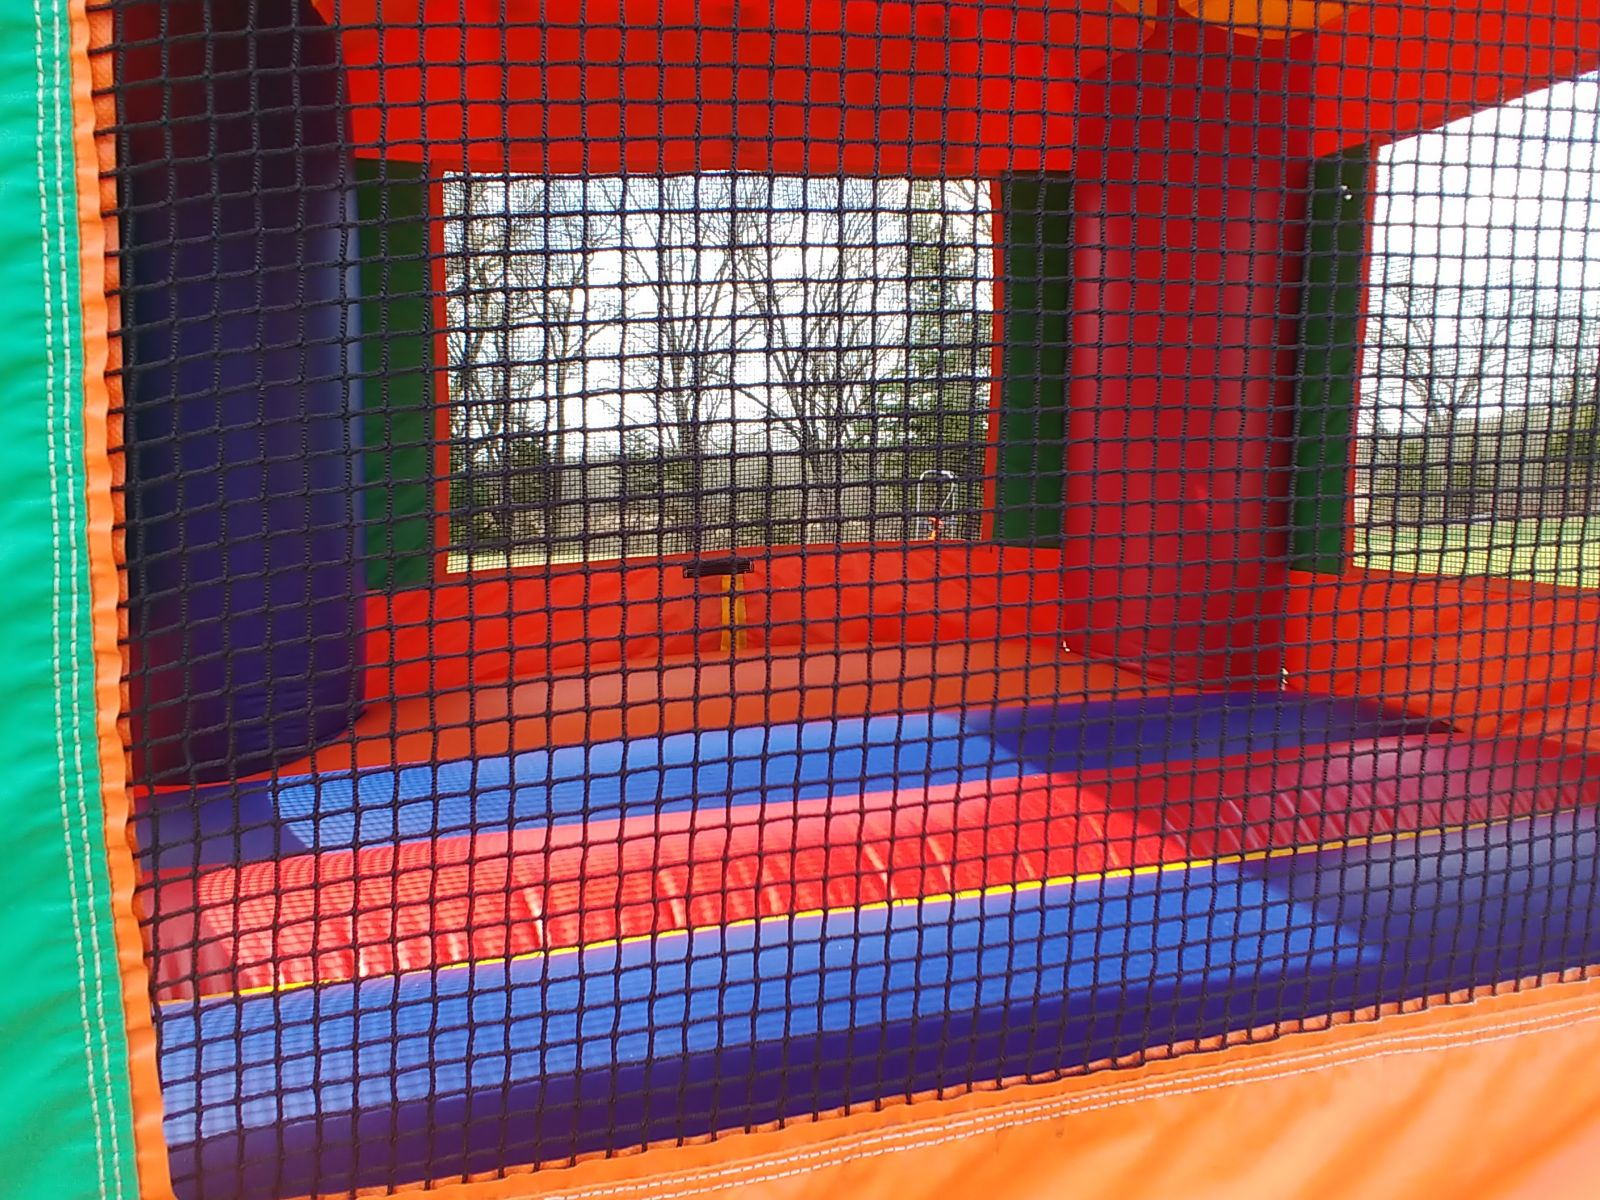 Sports Bounce House rental interior view